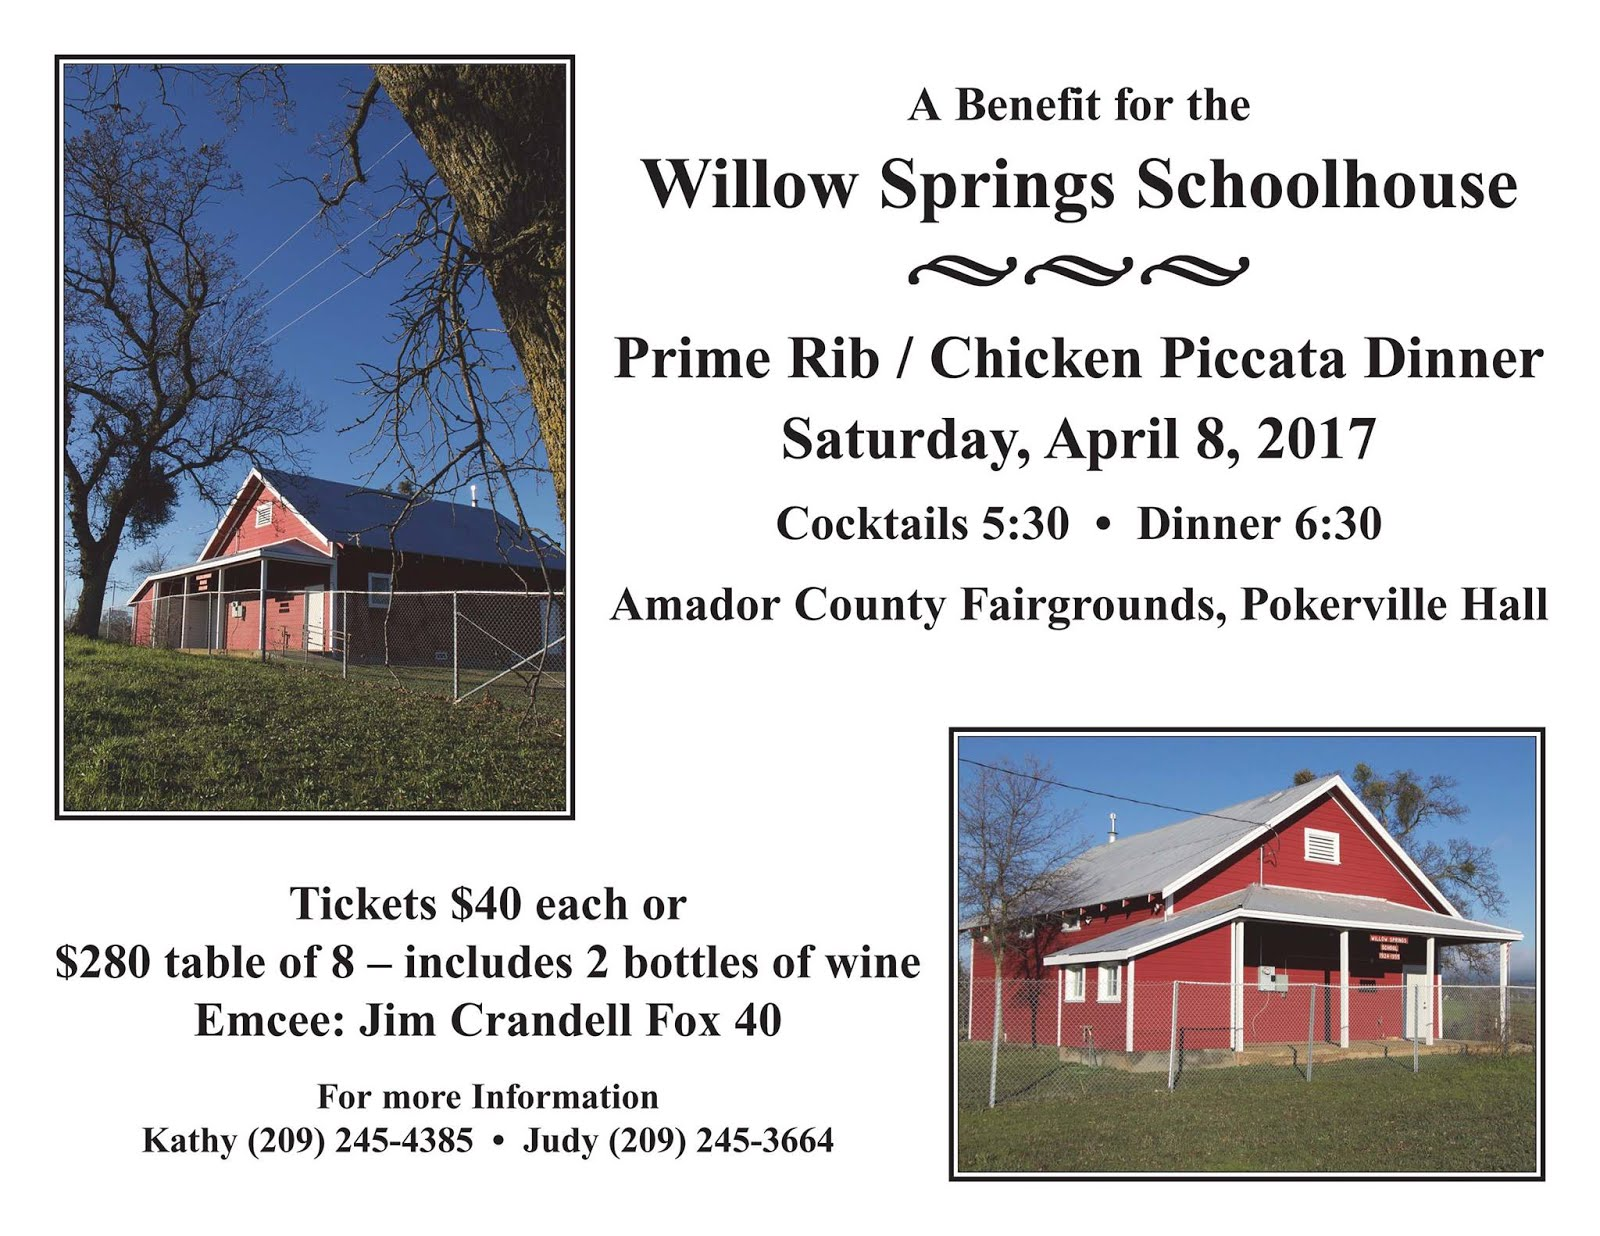 Willow Springs Schoolhouse Dinner Fundraiser - Sat Apr 8